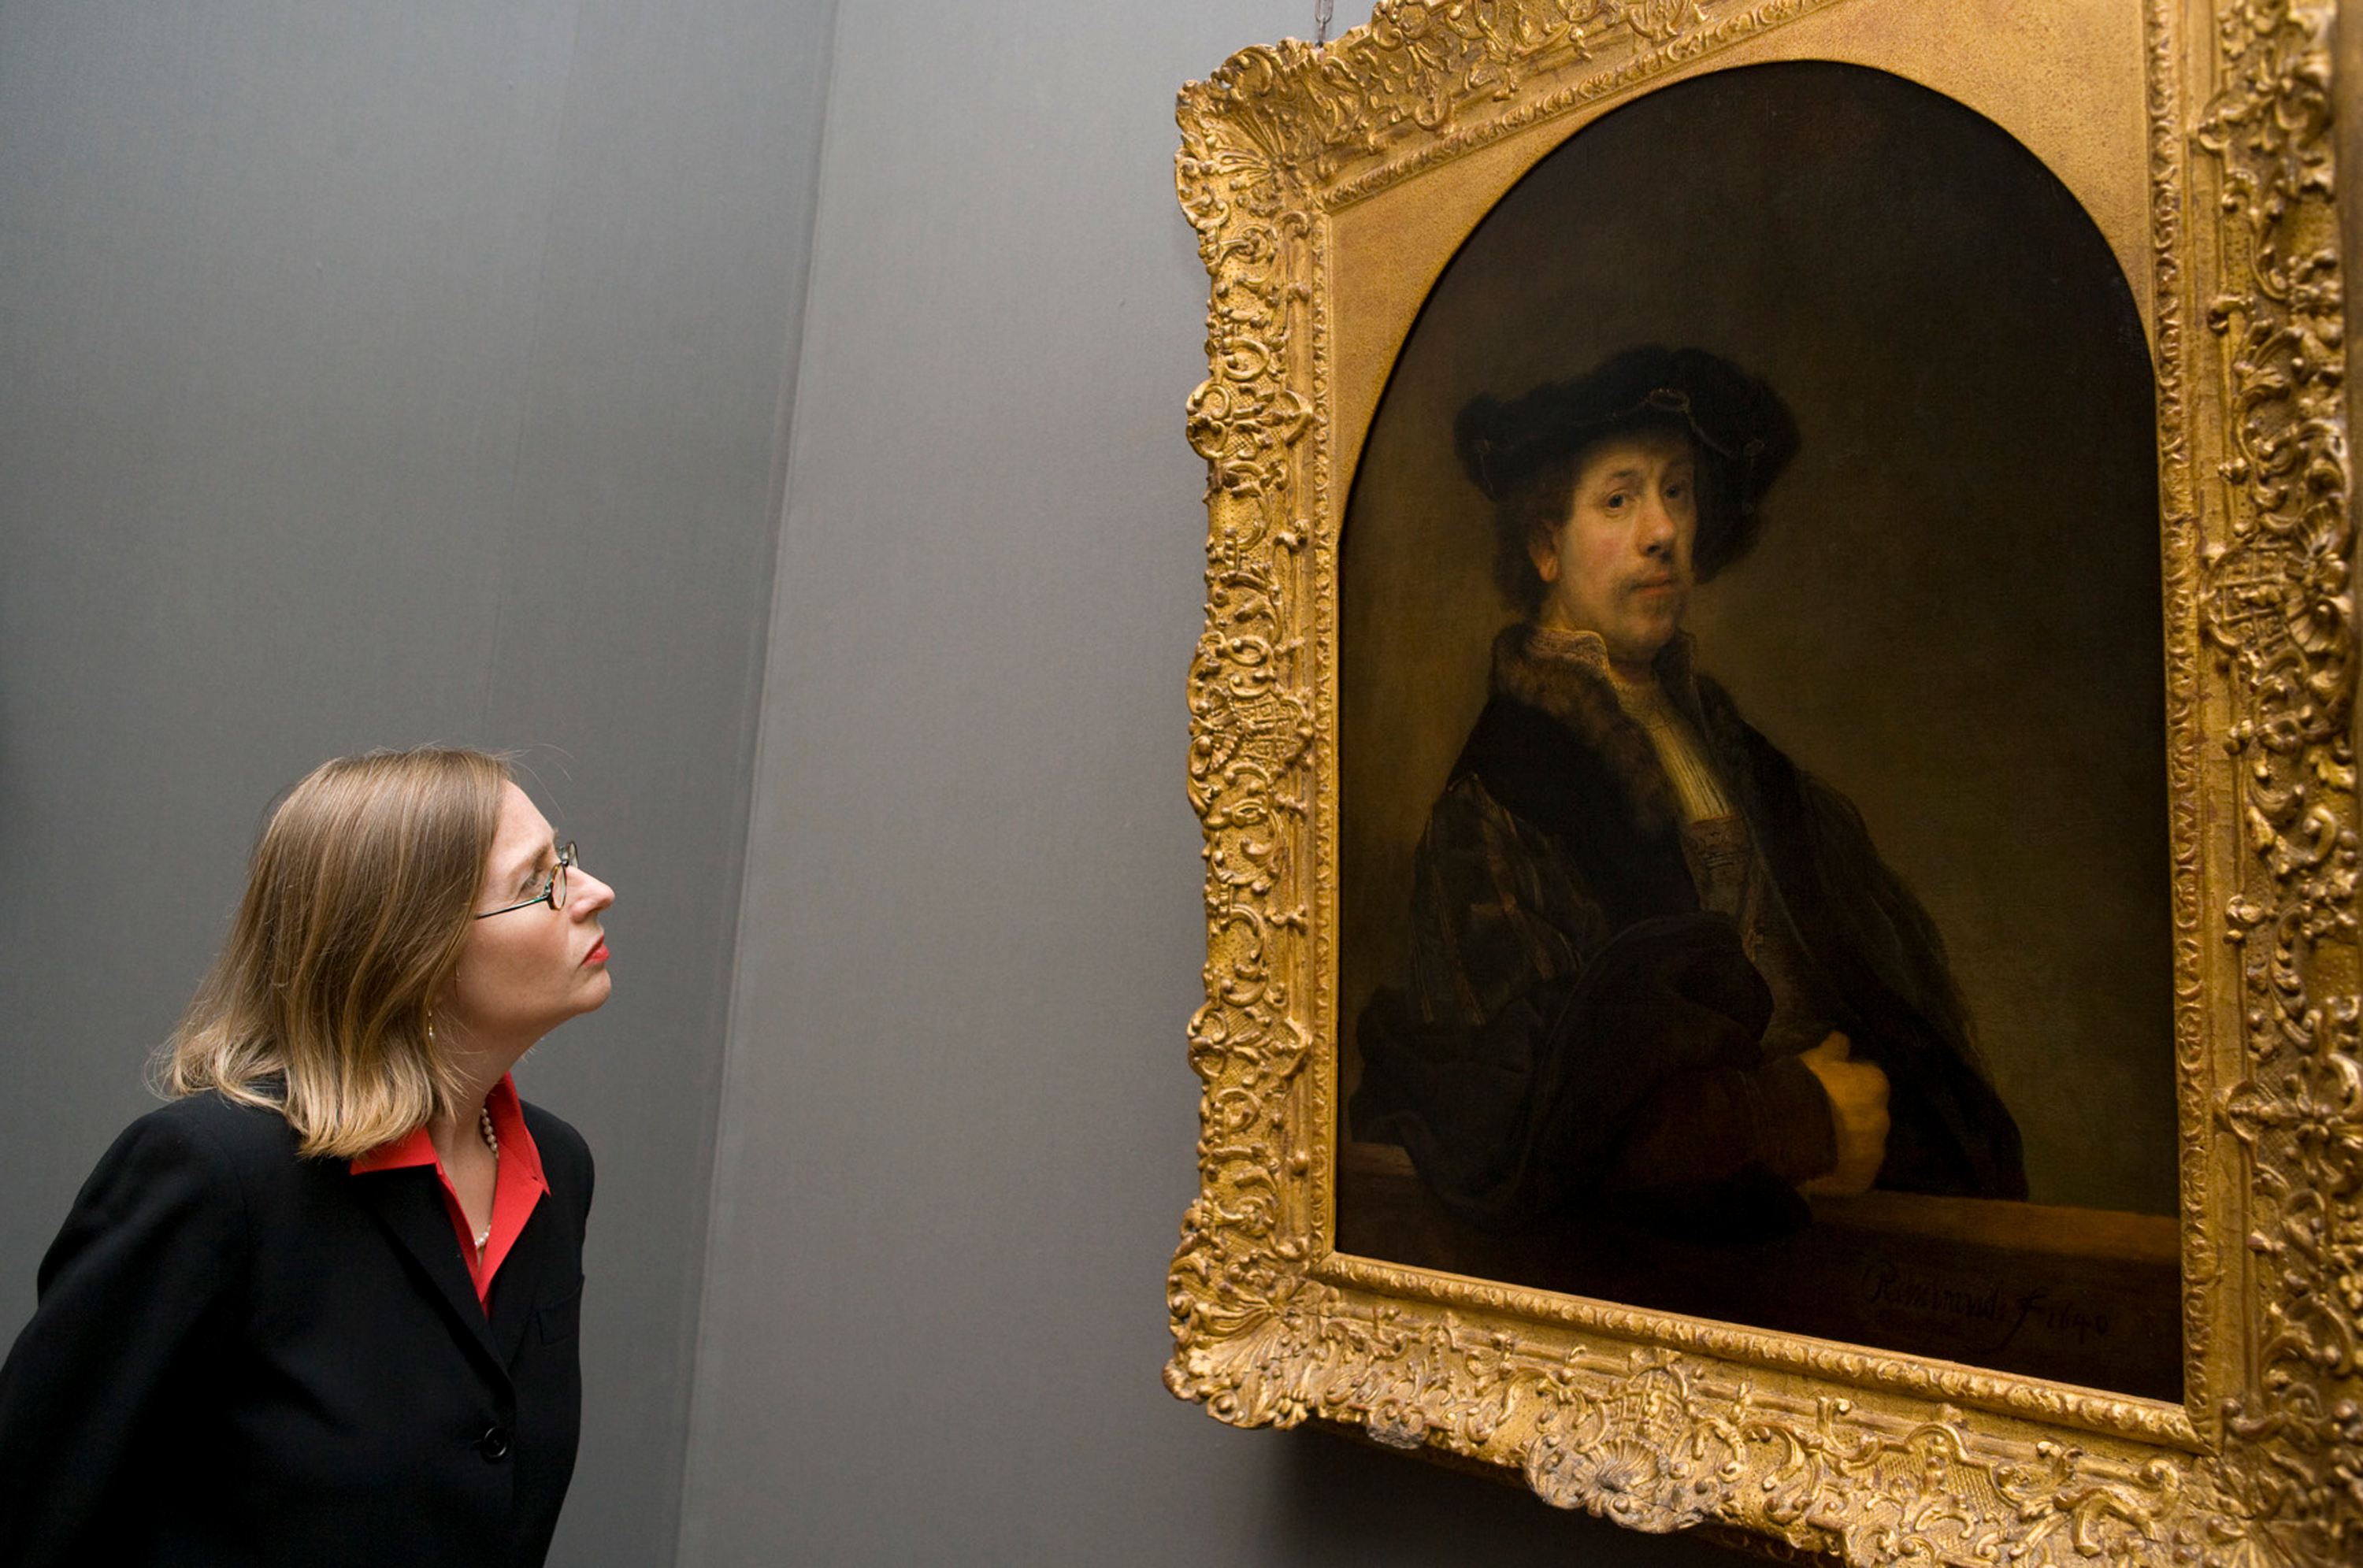 Installation view: Rembrandt. Self Portrait at the Age of 34. 1640. © The National Gallery, London.